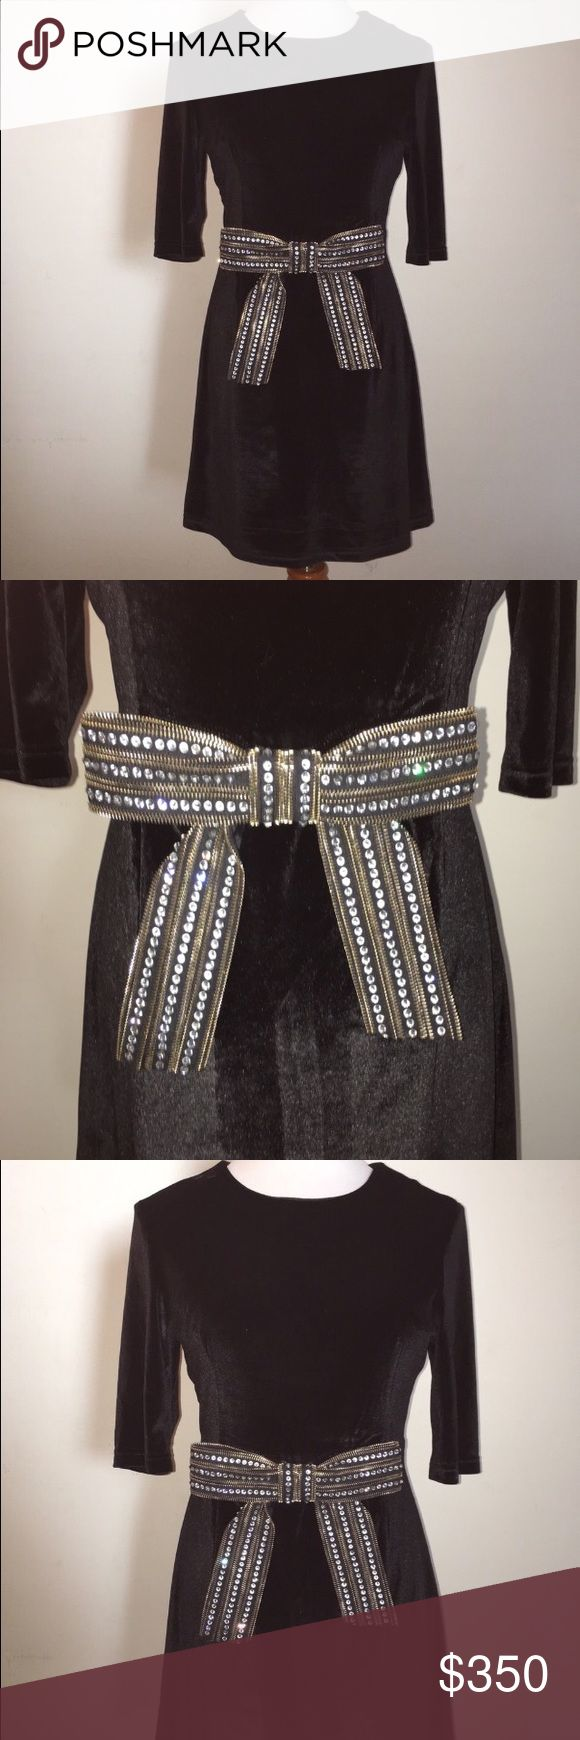 Stunning Ted Baker Evening Dress. Stunning Ted Baker Evening Dress. Black velour with a gorgeous accent studded bow at the waist. Baker by Ted Baker Dresses